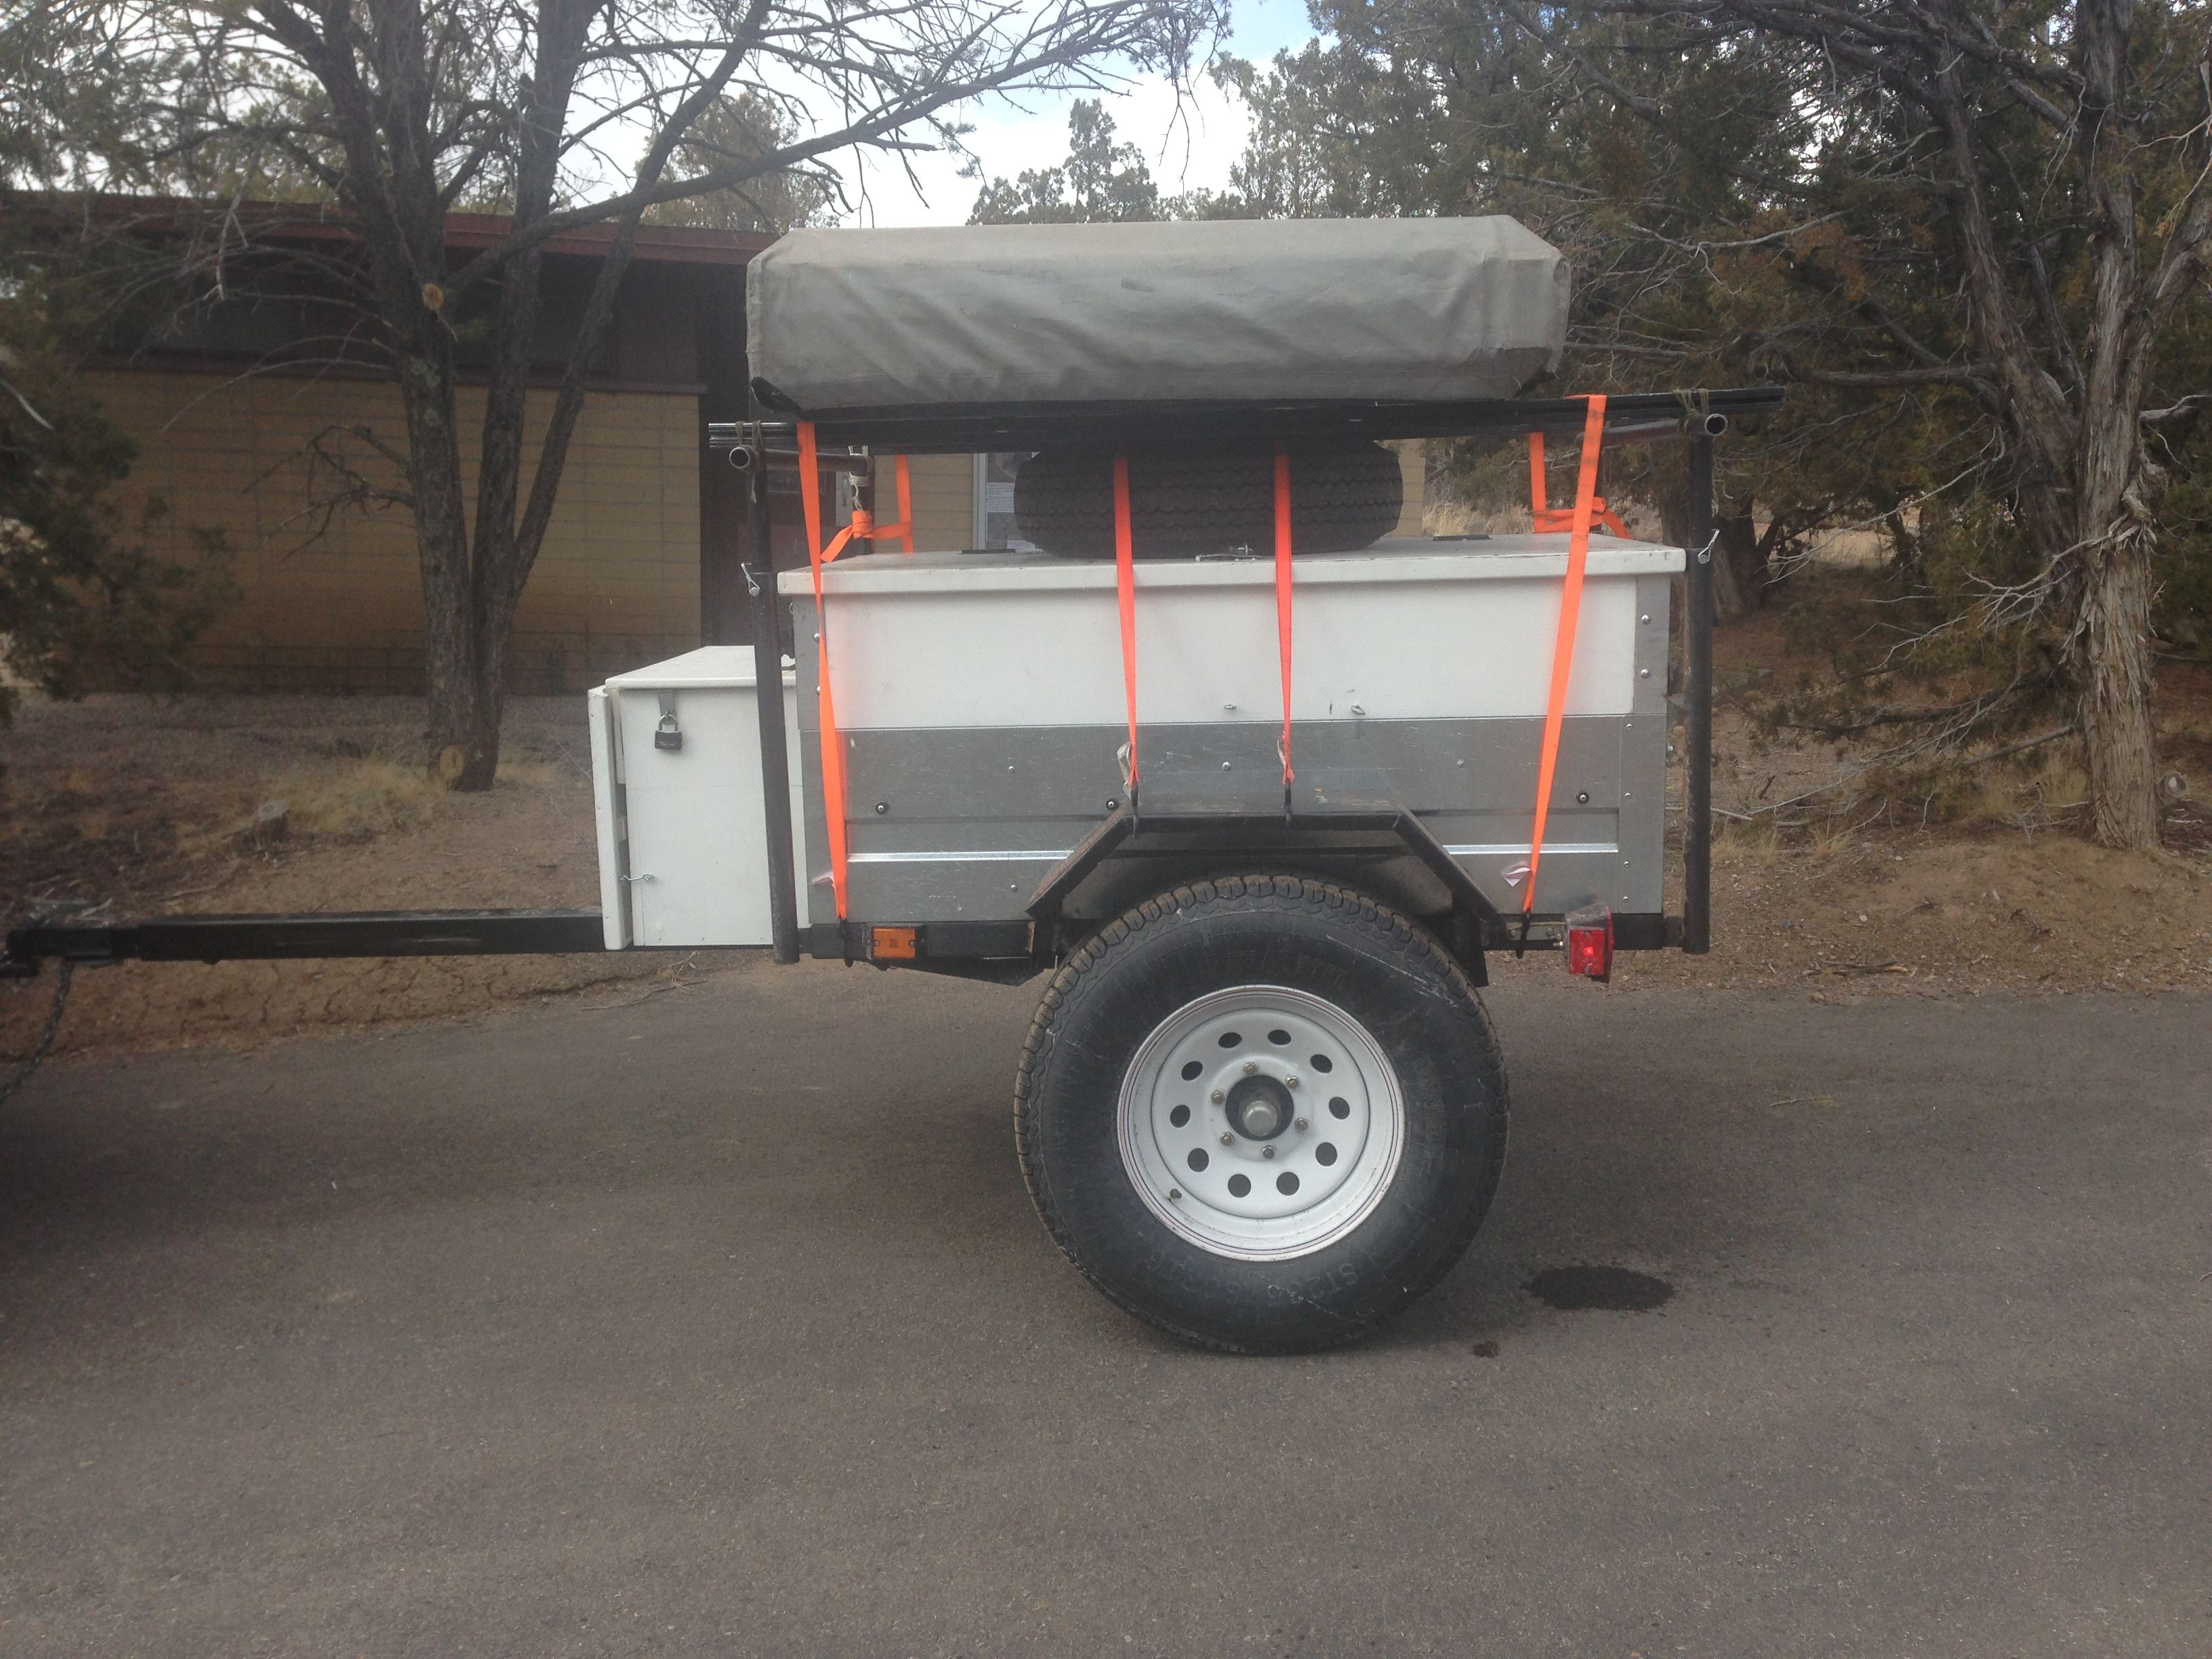 About 40 There Suspension Complete And Roof Top Tent Mounted Roof Top Tent Overland Trailer Top Tents